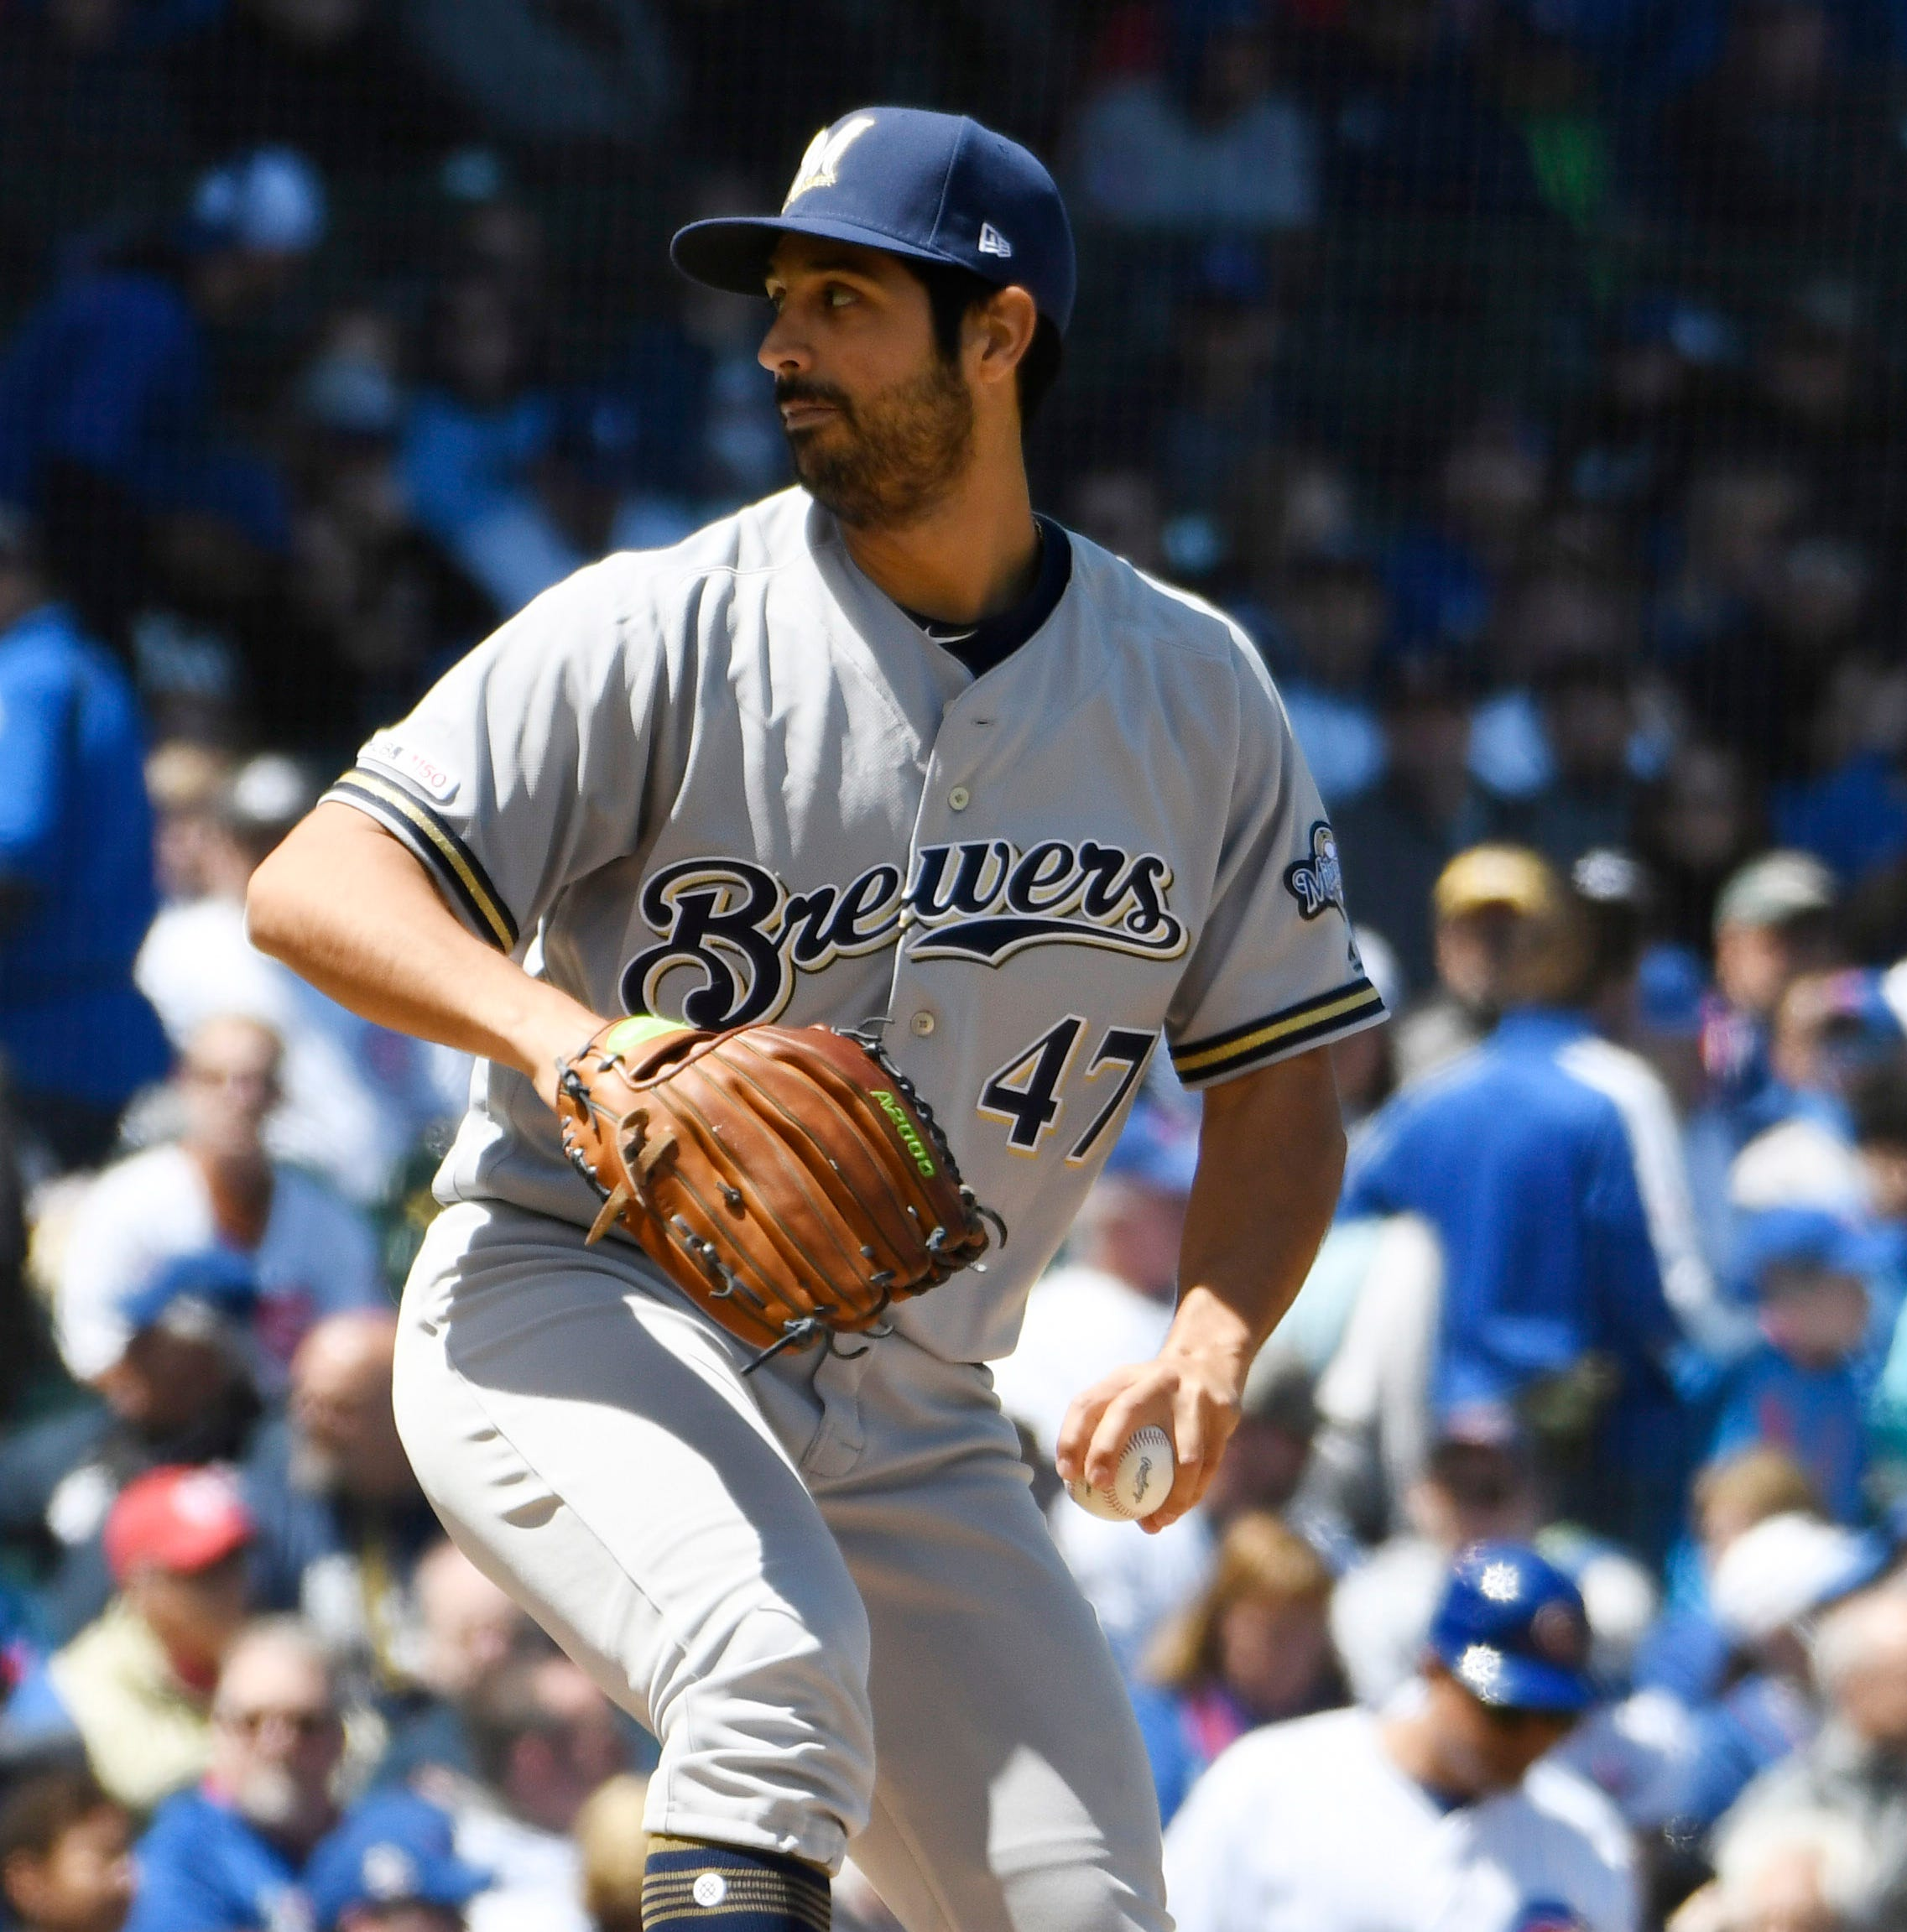 Brewers 7, Cubs 0: Strong start by Gio Gonzalez, late runs stretch win streak